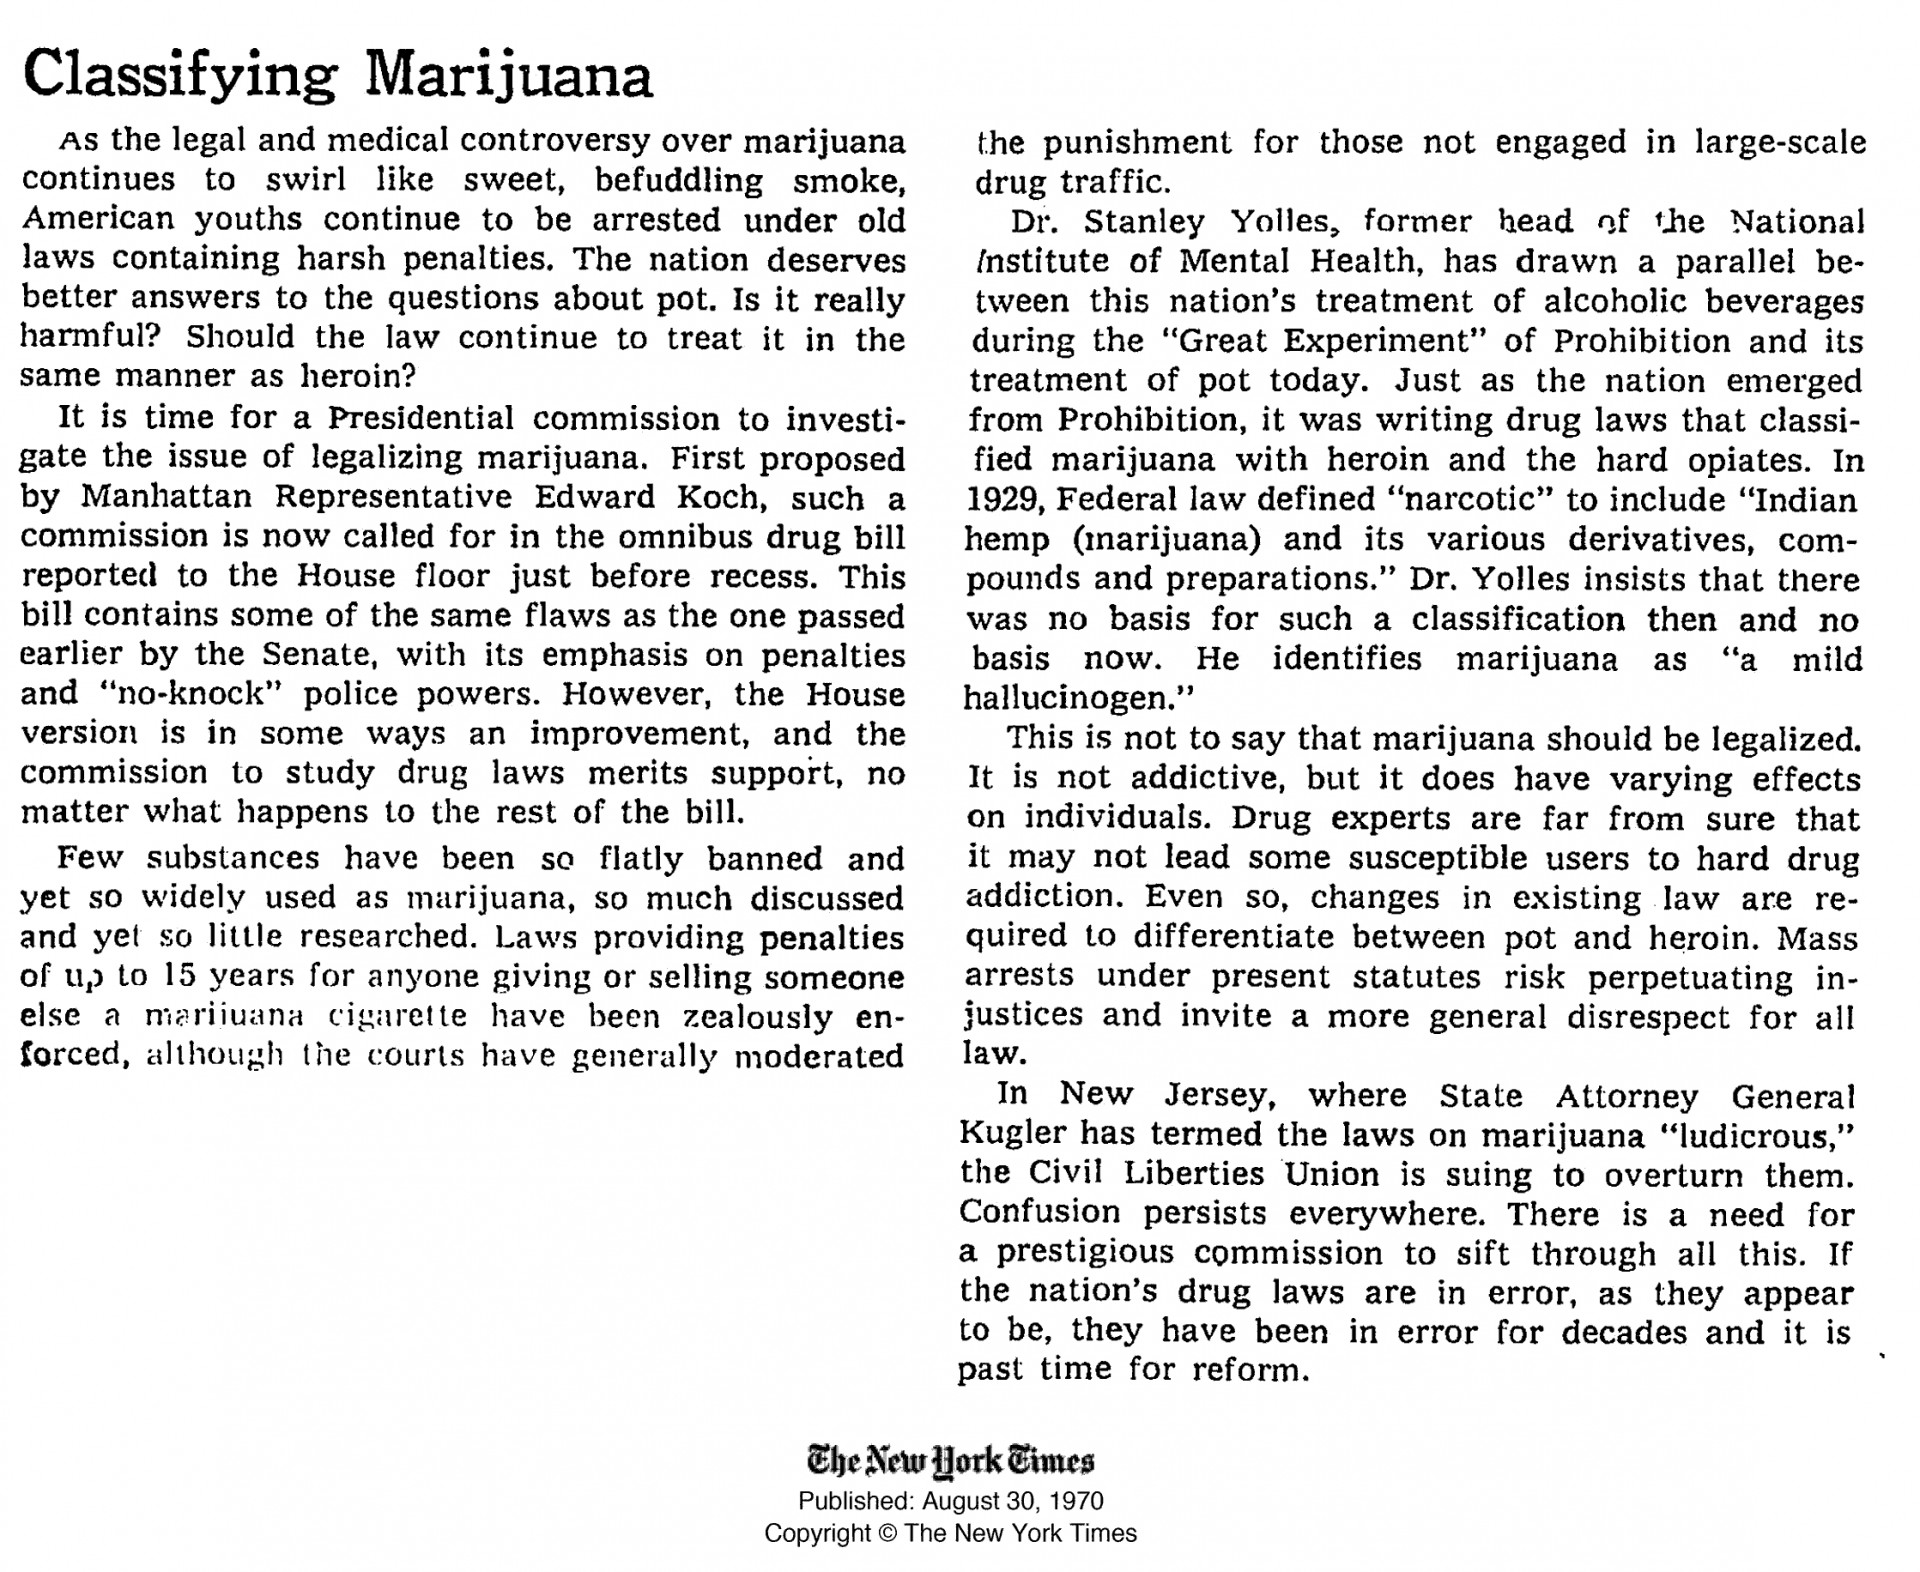 016 reasons marijuana should legalized essay legalize weed